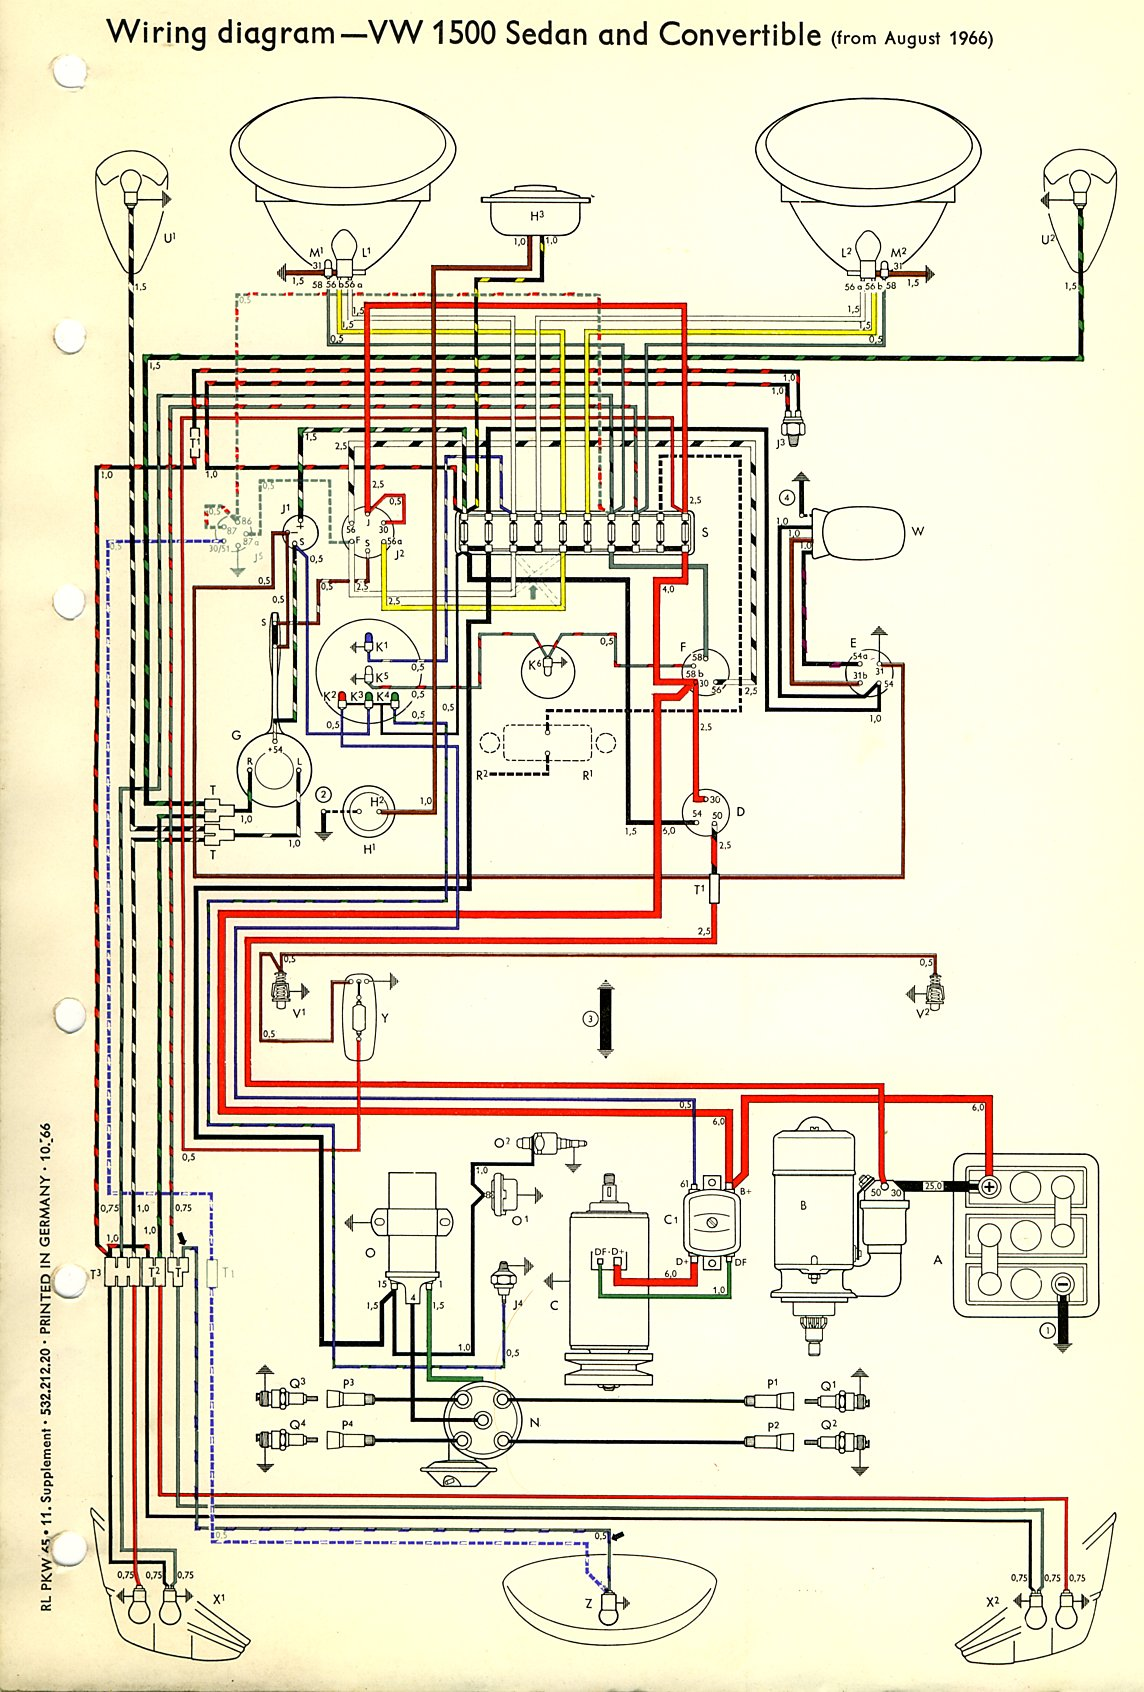 Gallery 1183 1 furthermore Emg 81 85 One Volume Tone Wiring Diagram moreover 1541 Cub Cadet Wiring Diagram besides 1984 Dodge Colt Overview C6526 additionally Bmw 545i Wiring Diagram. on bentley wiring diagram